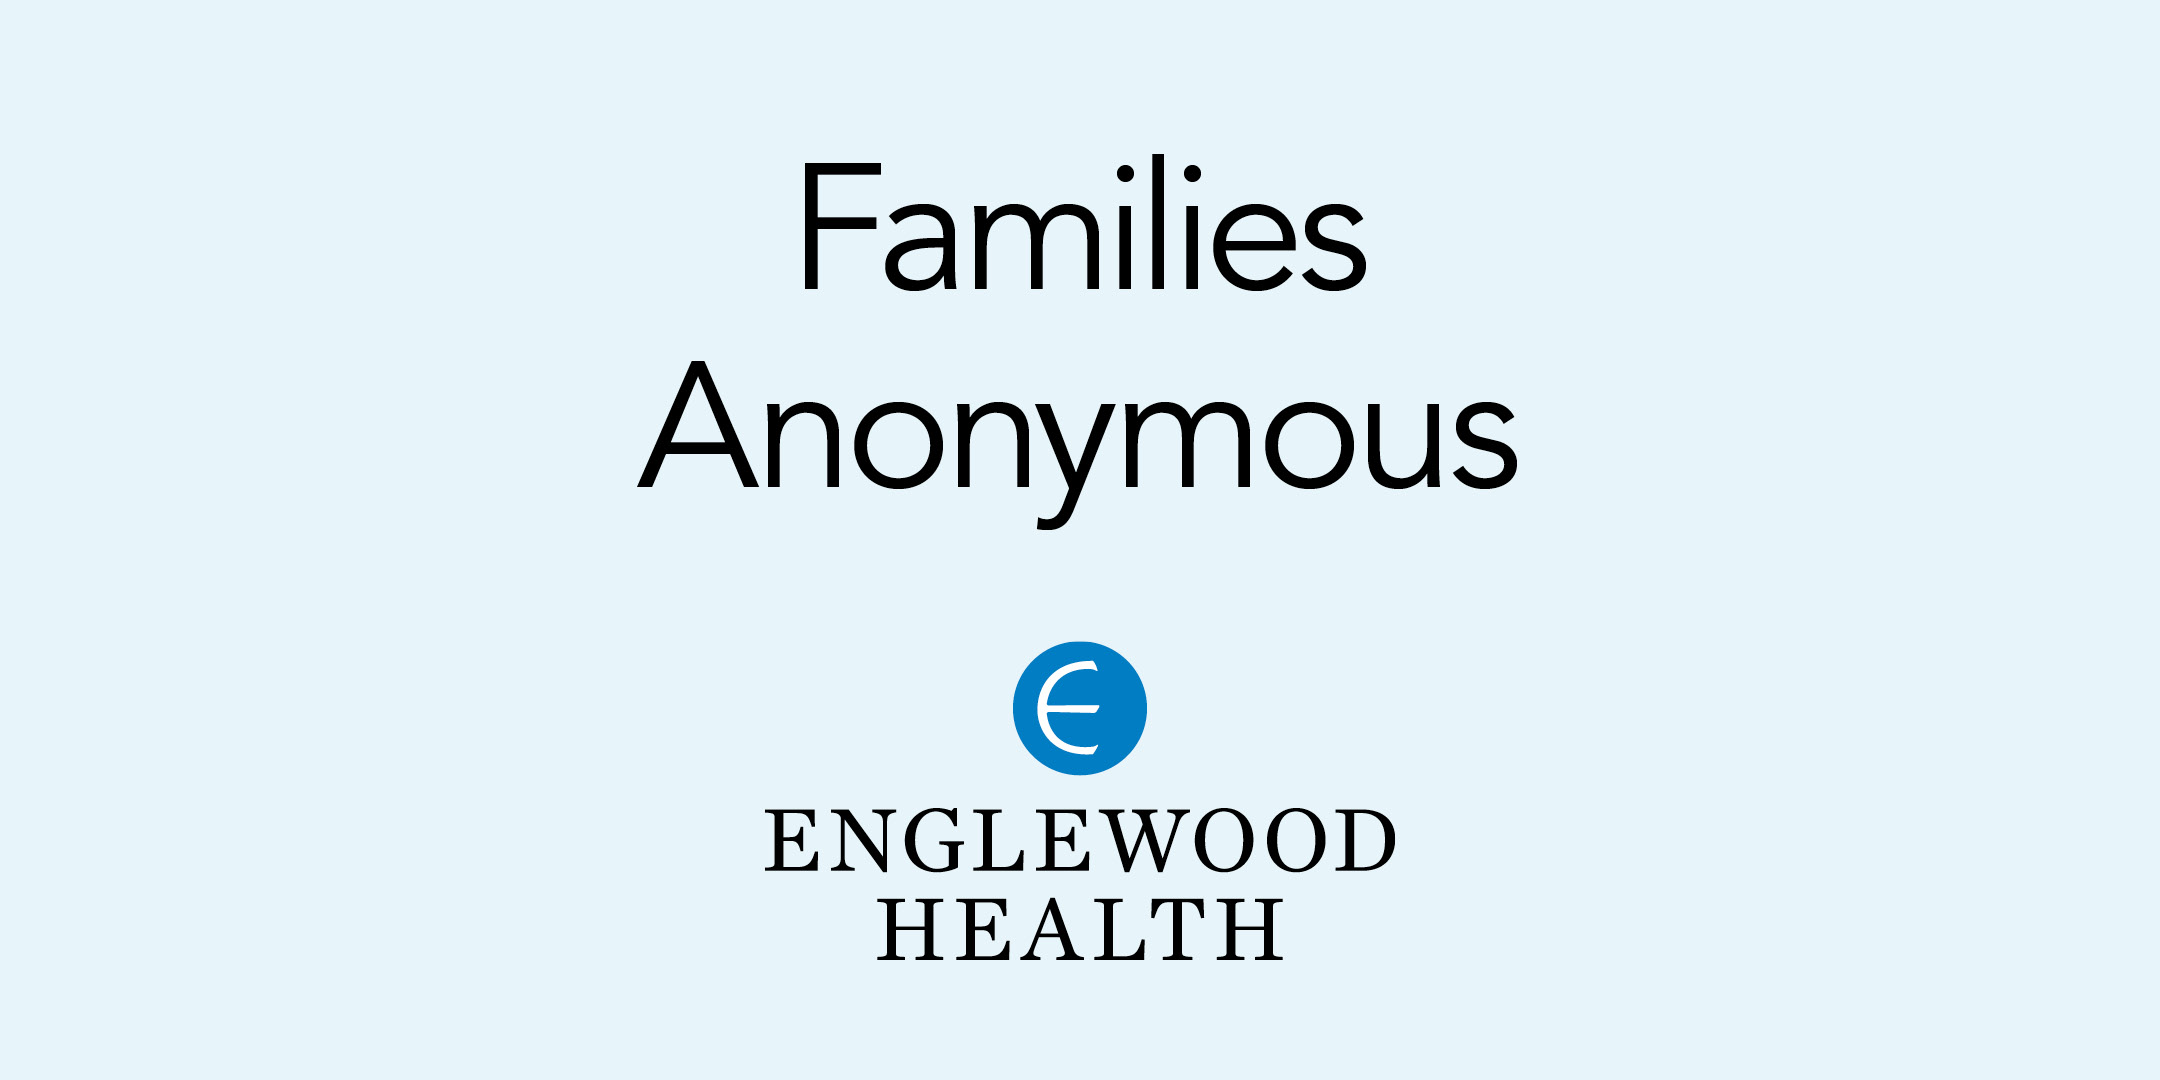 More info: Families Anonymous